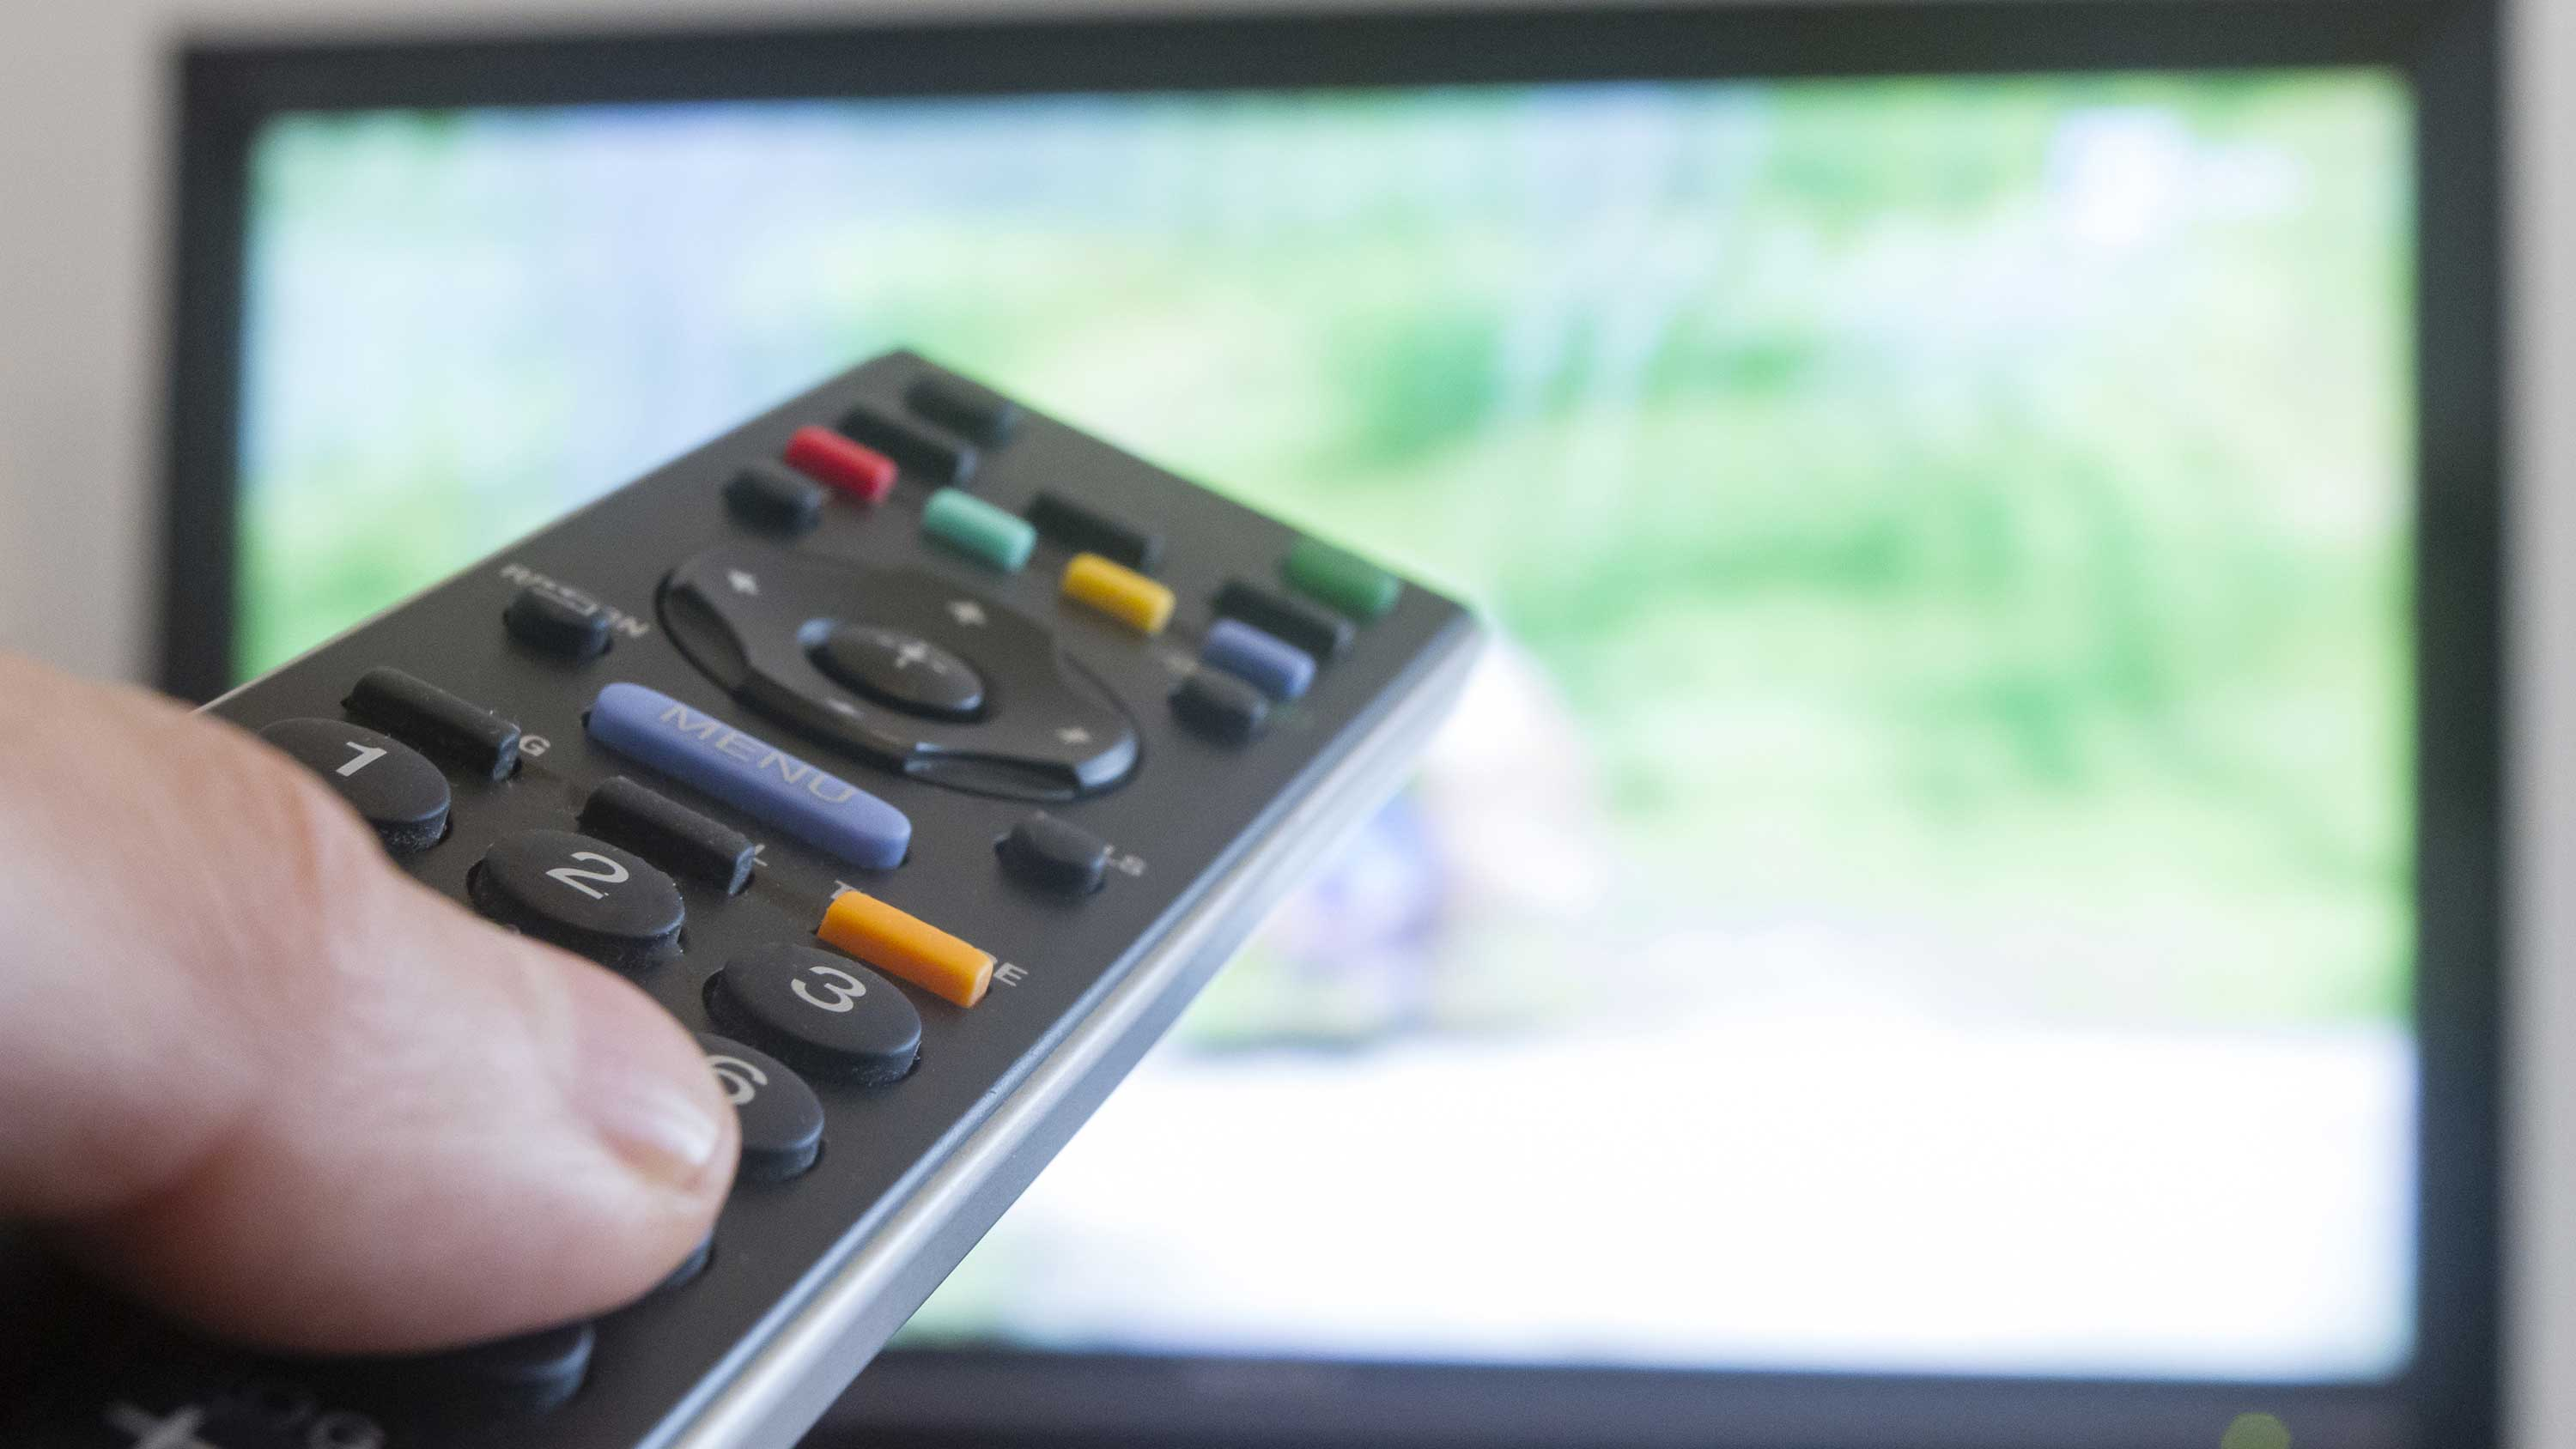 What you need to know about the TV channel rescan